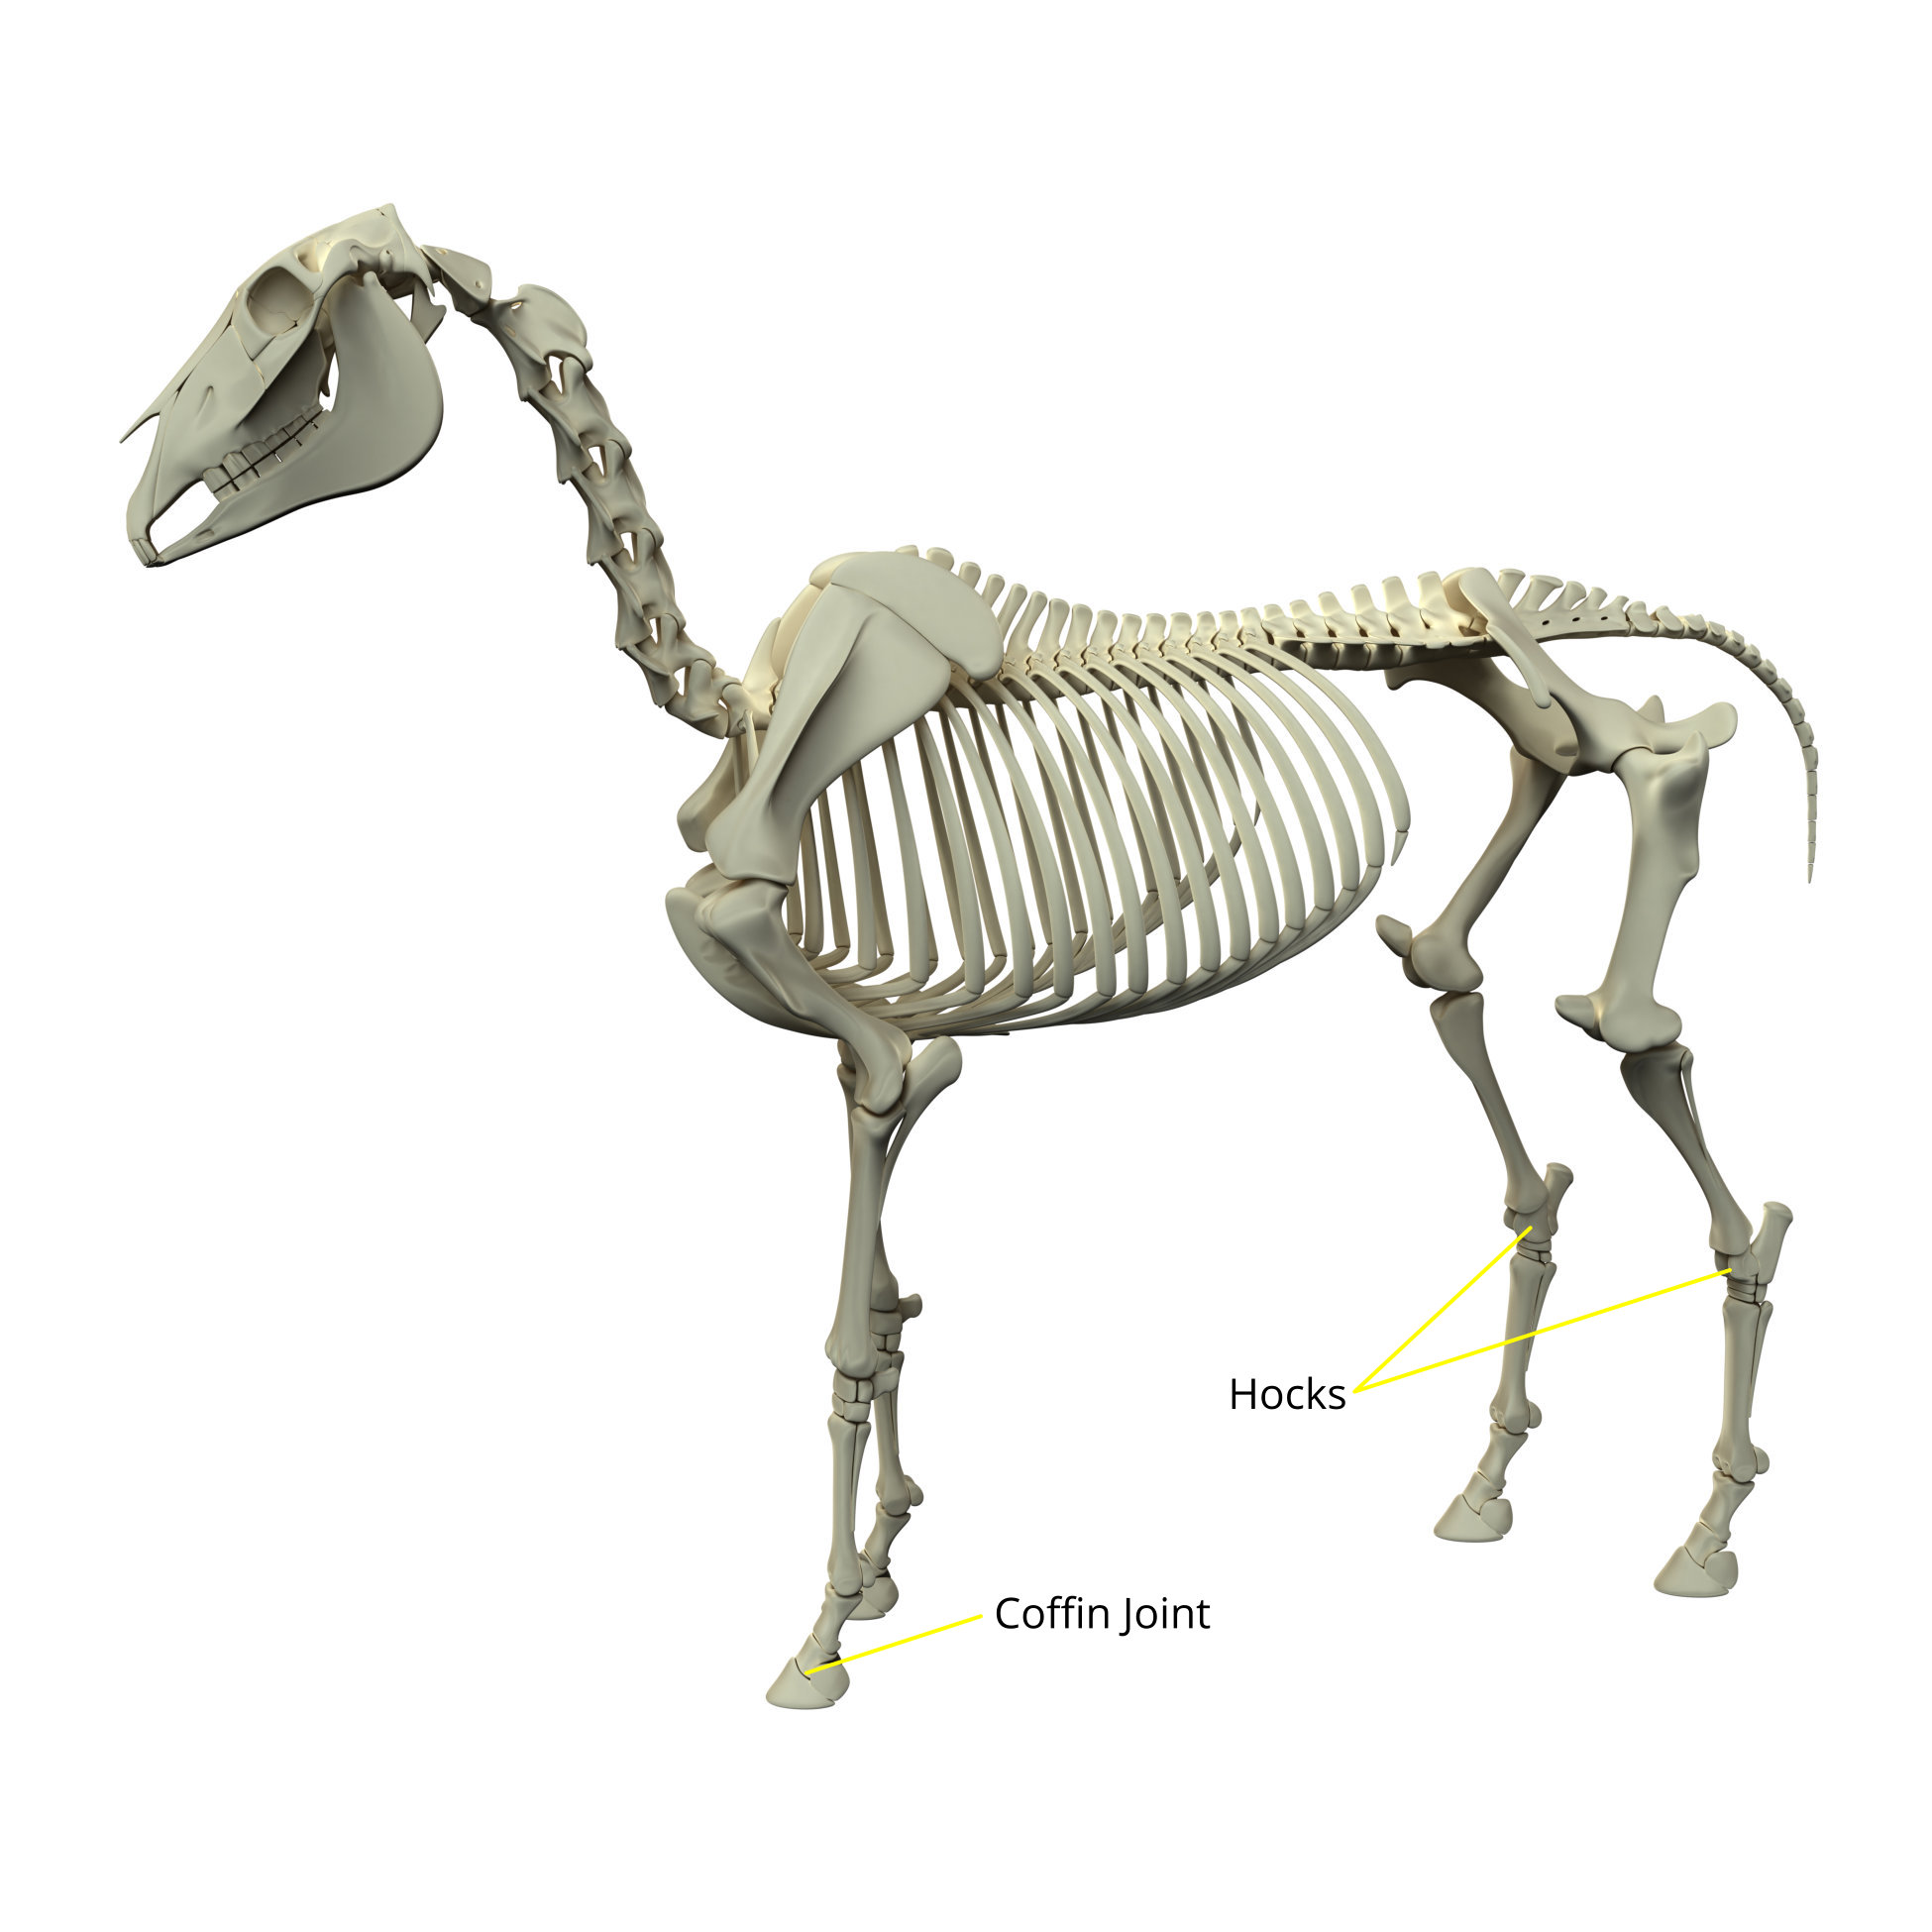 Horse Skeleton with joints identified - Show Jumping Life